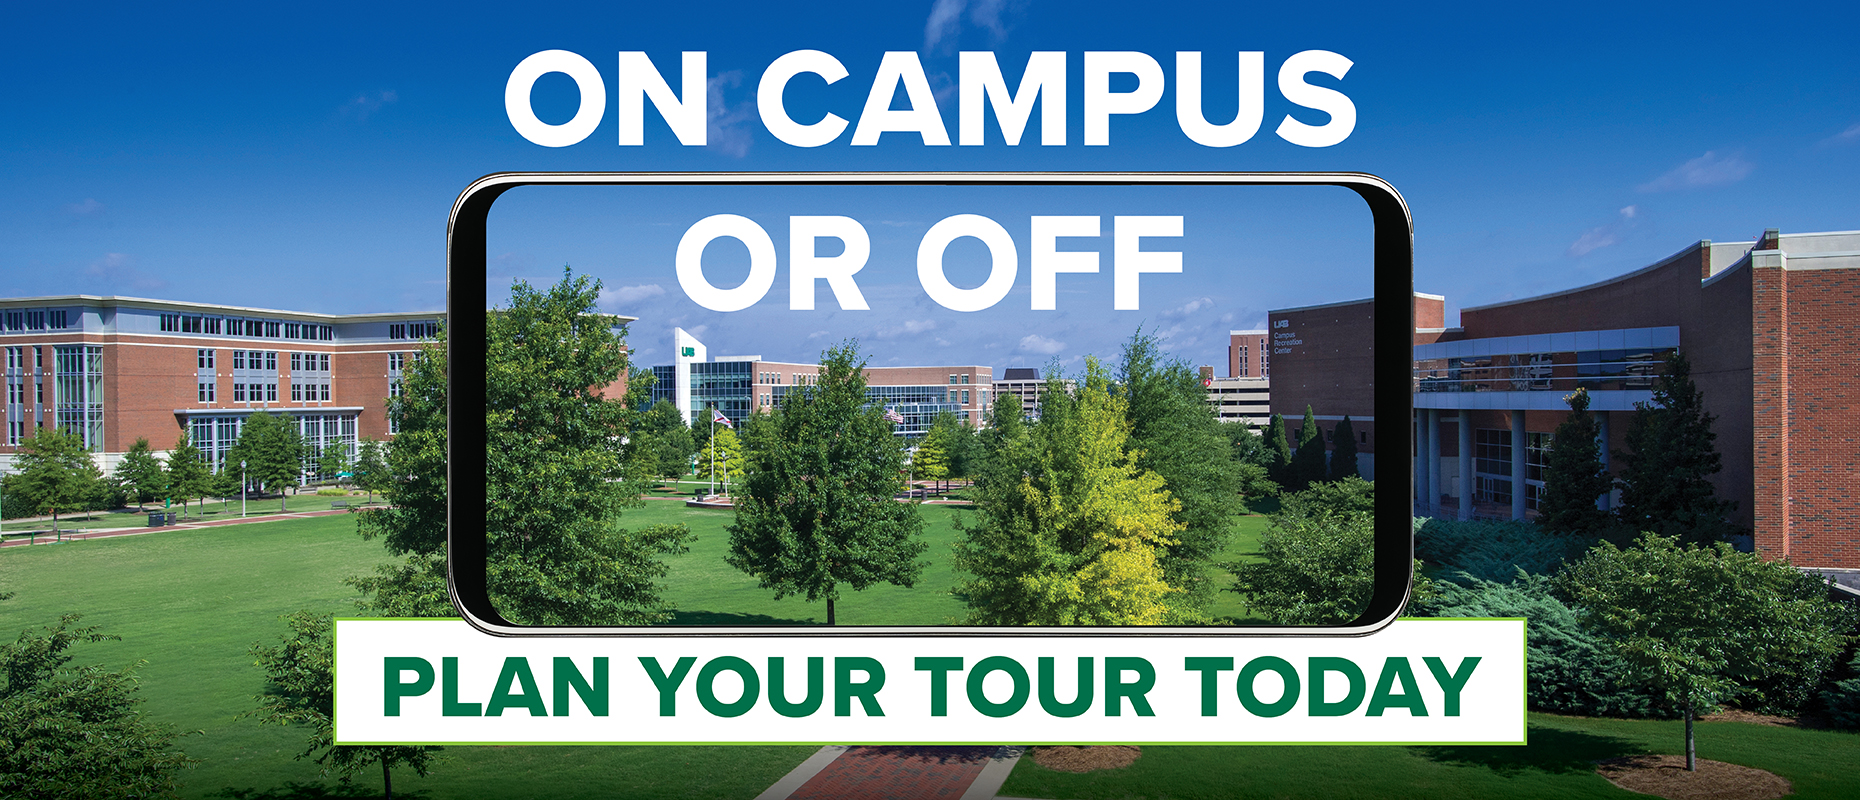 On campus or off: Plan your tour today